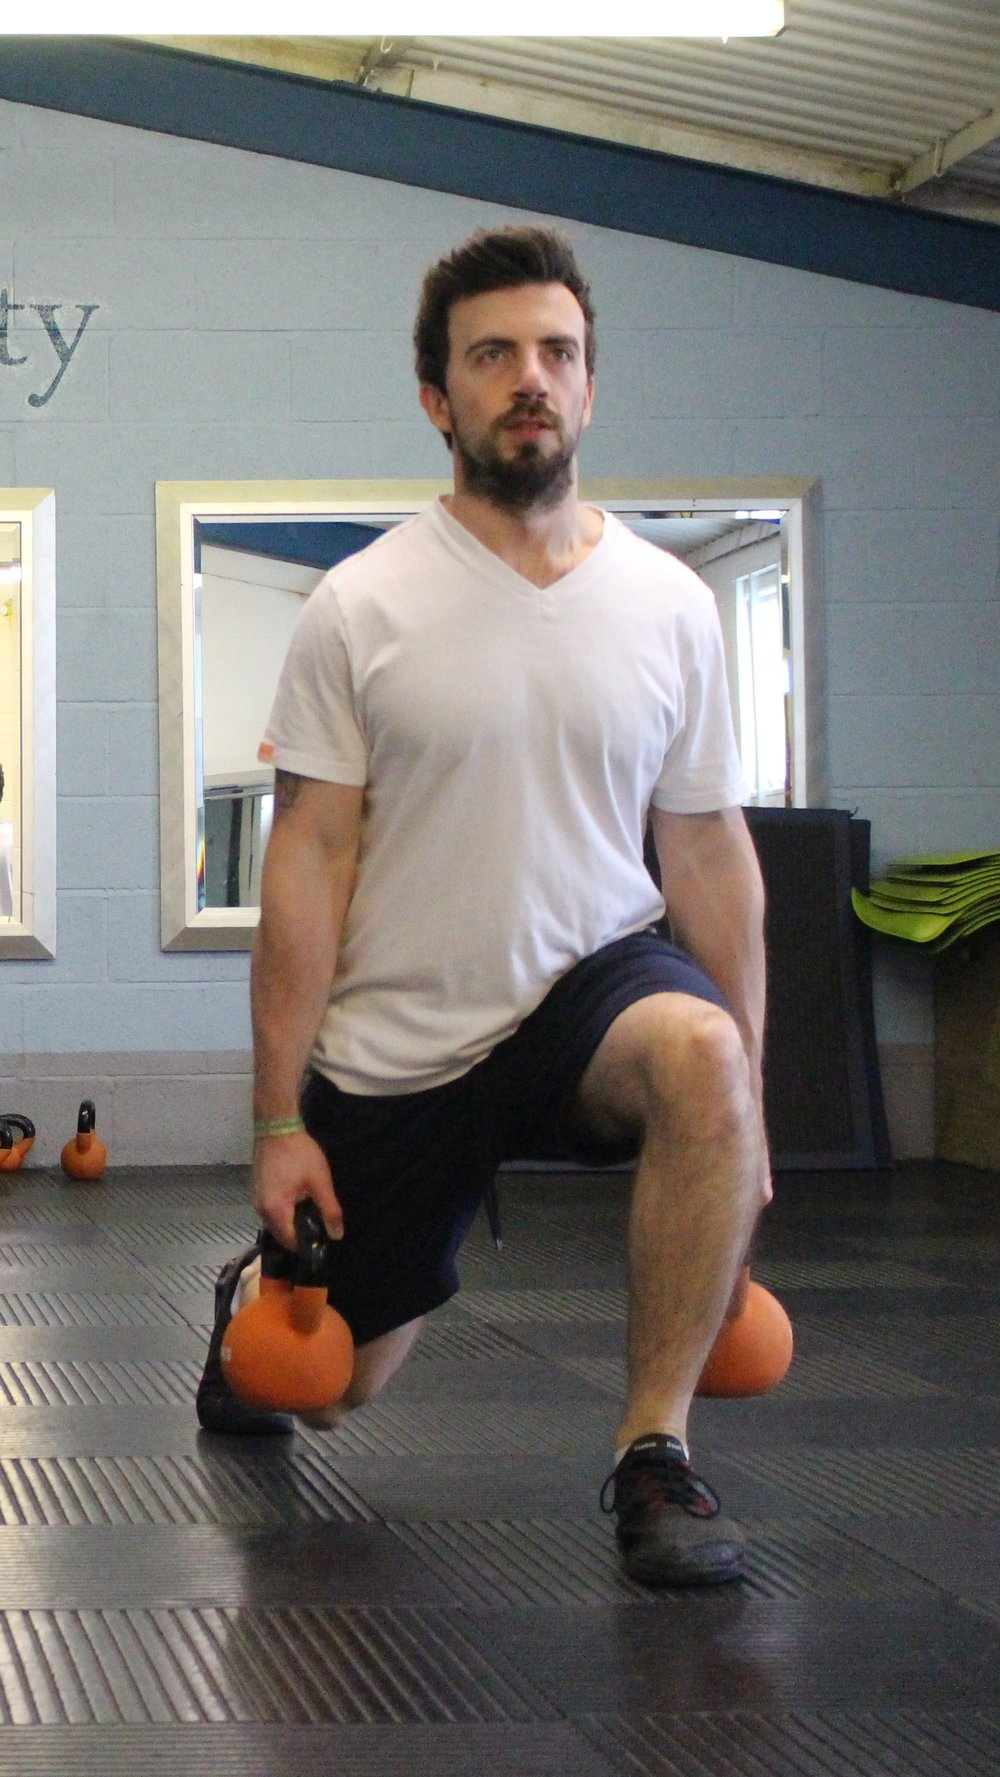 Dan, a personal trainer in Frome, exercises with kettlebells in the studio.